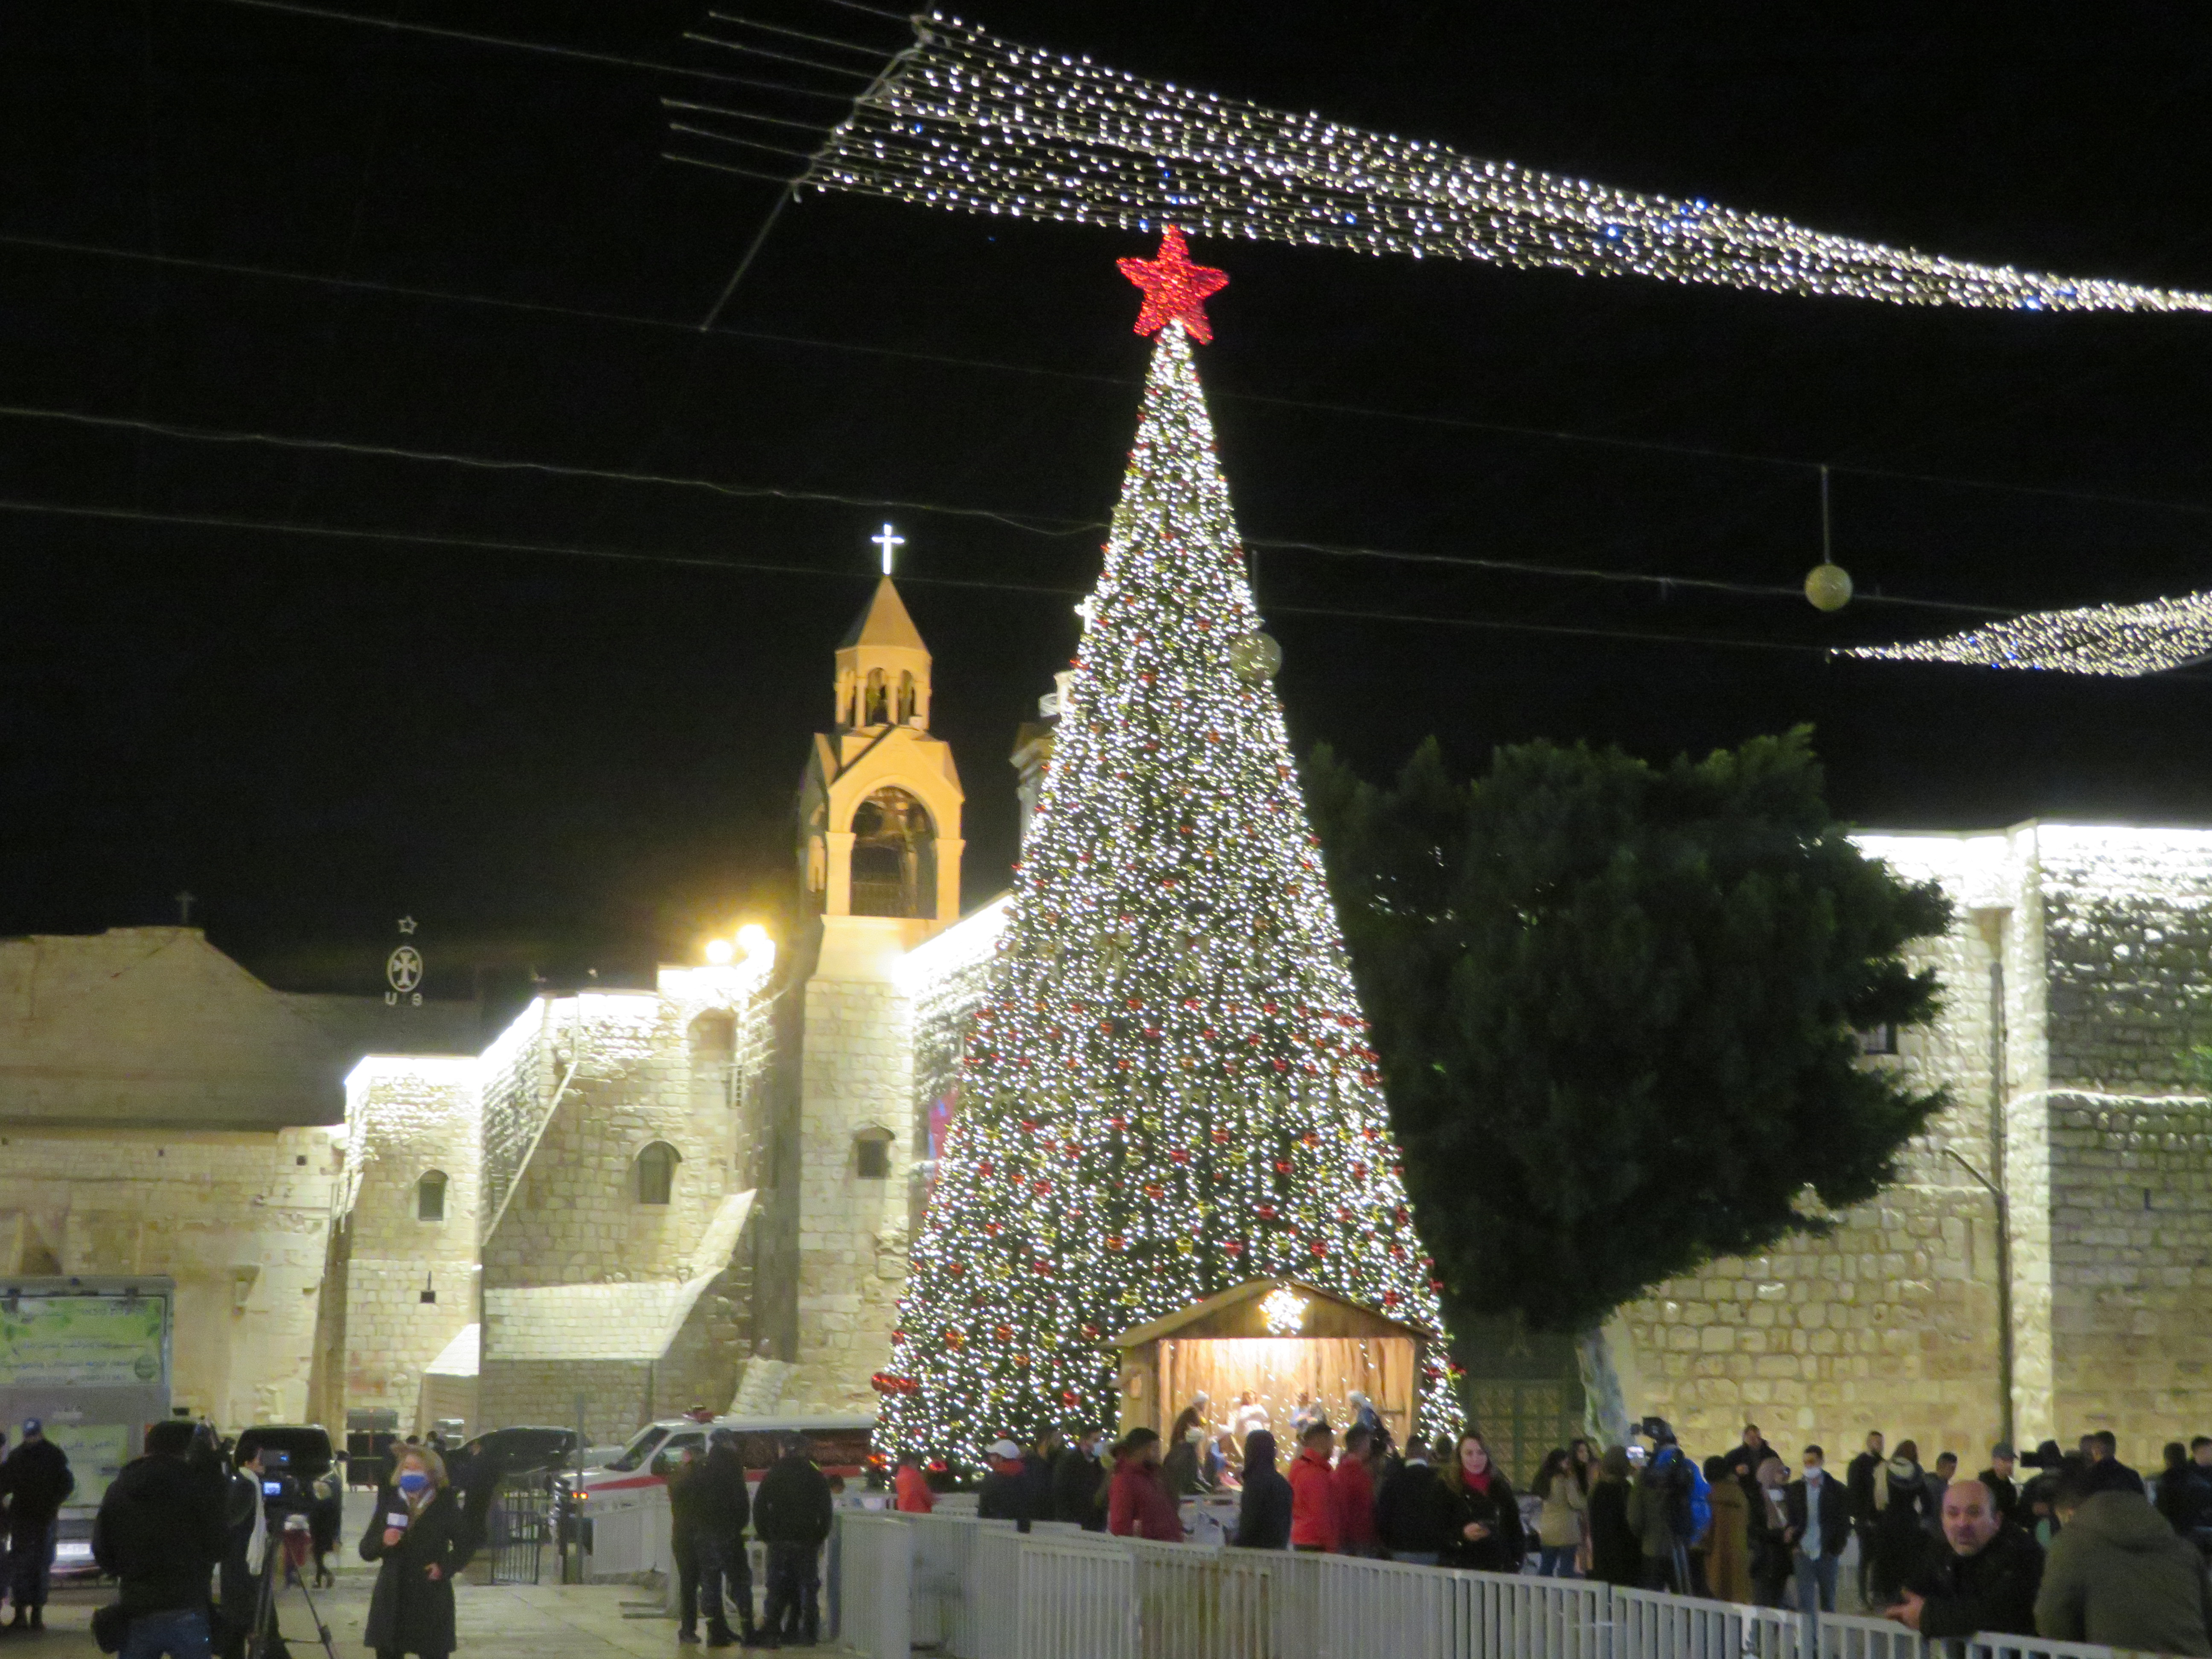 A COVID Christmas: A smaller than usual crowd in Bethlehem's Manger Square on Christmas Eve, 2020